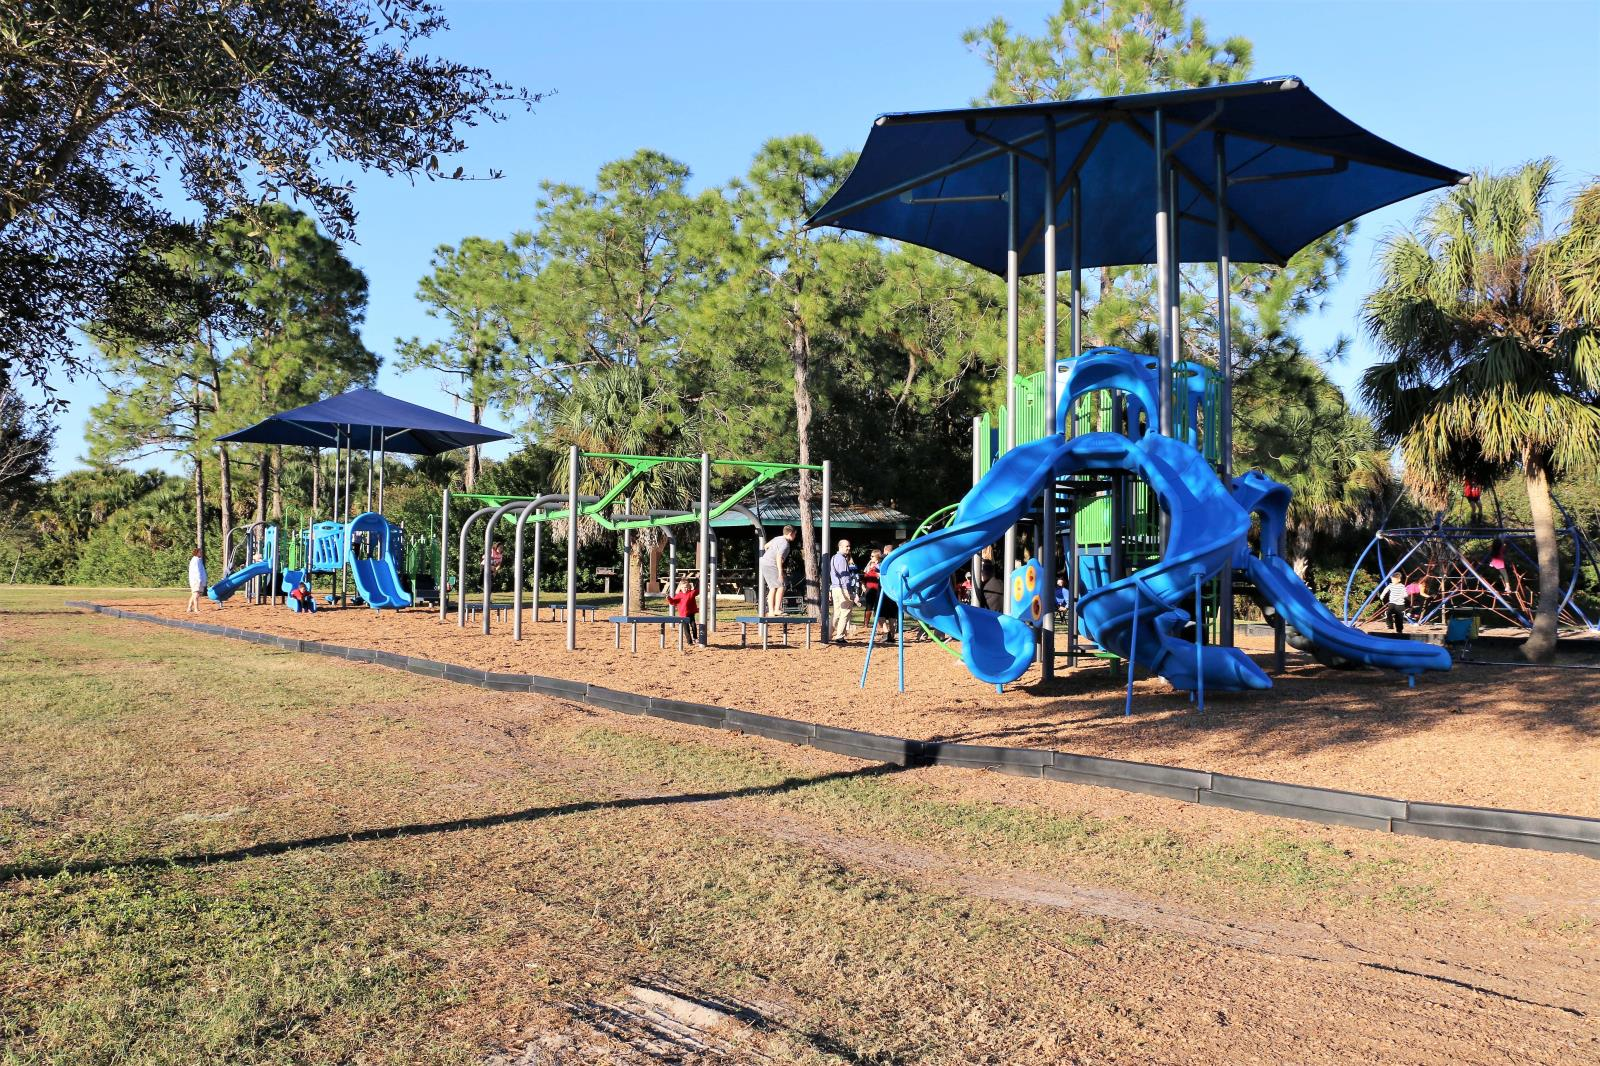 Playground with slides and canopy